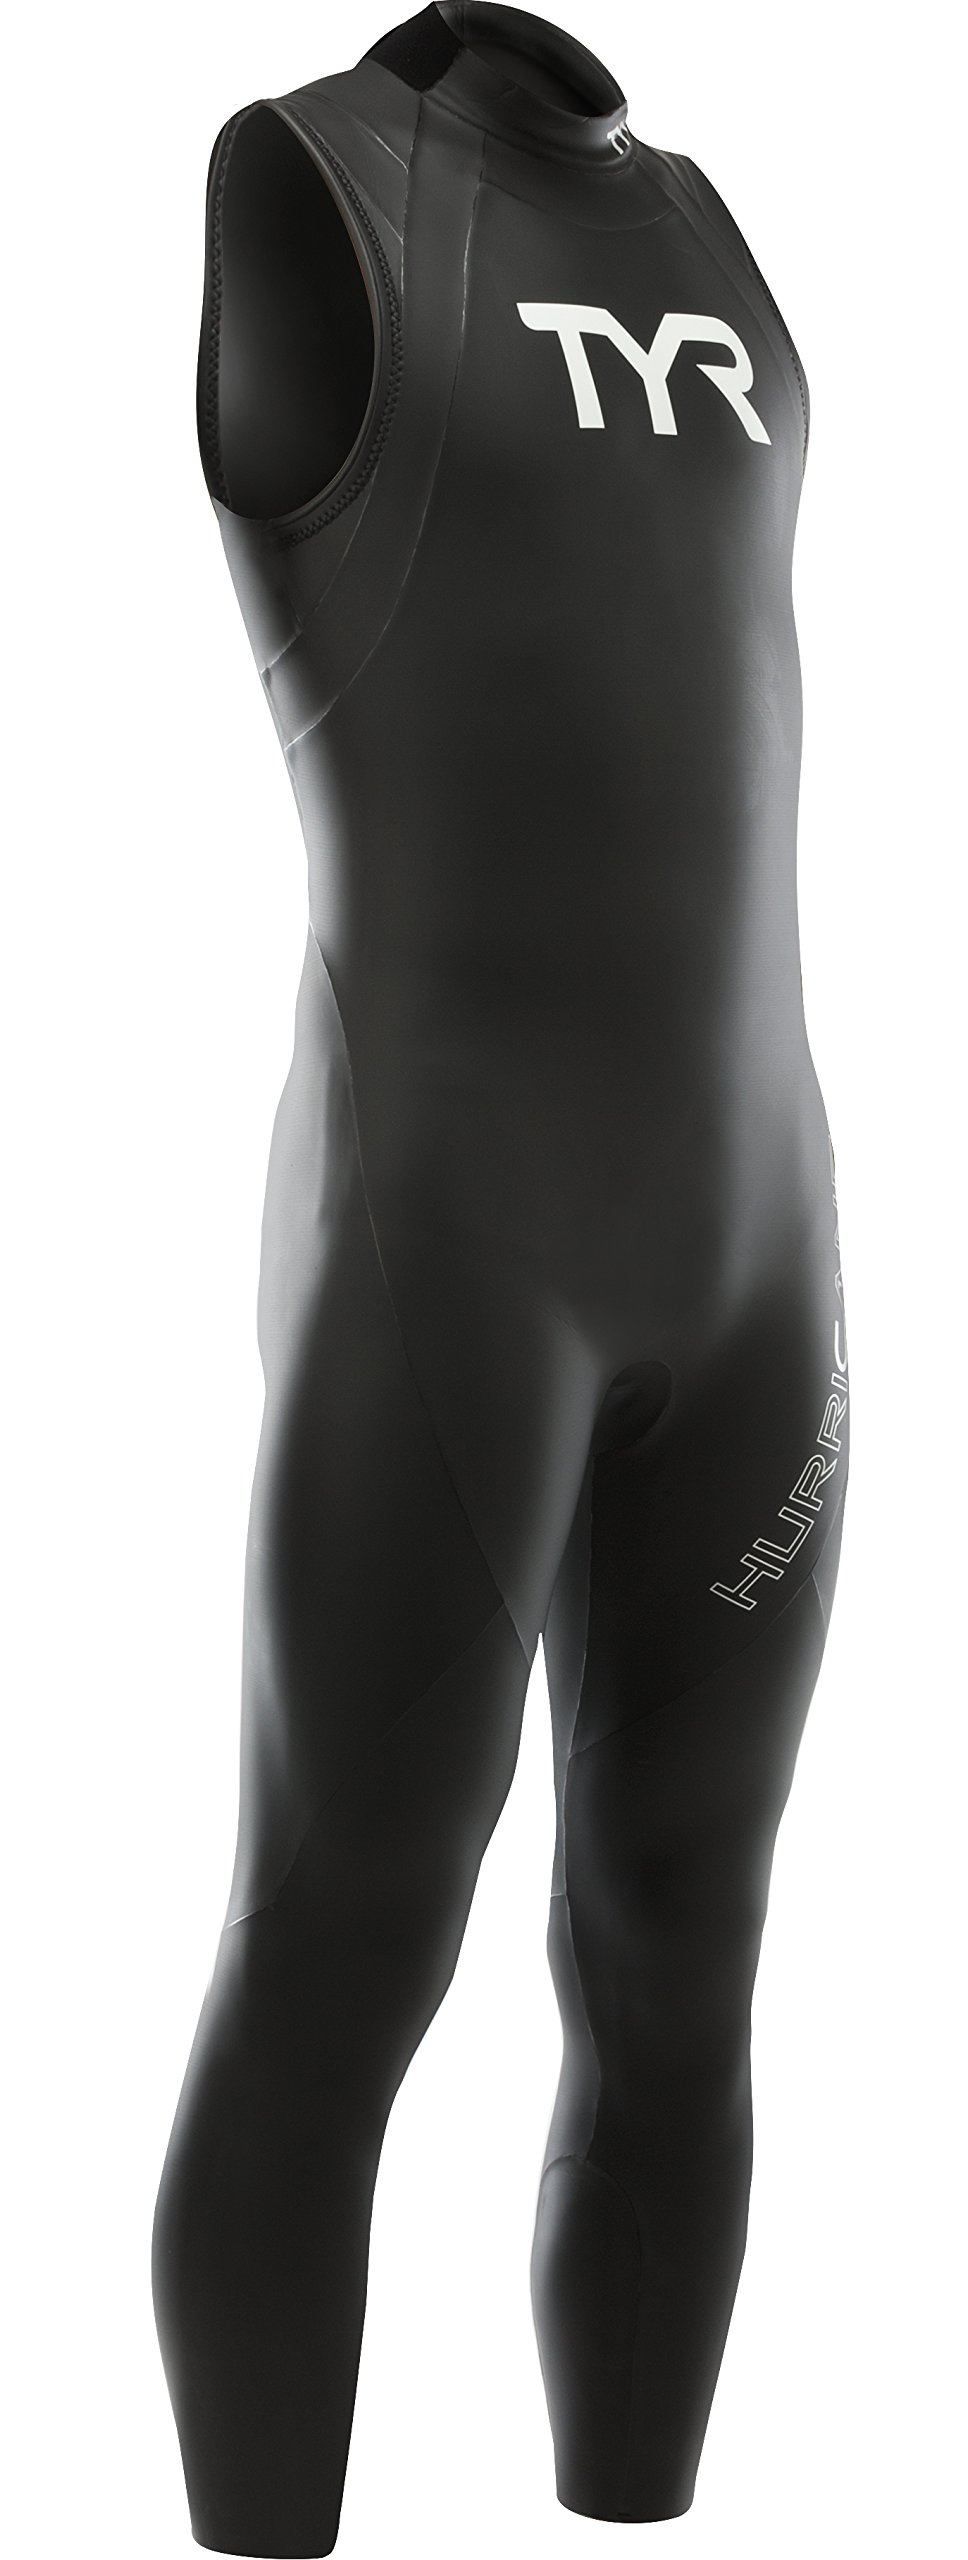 TYR Sport Men's Hurricane Sleeveless Wetsuit Category 1, Black/White, X-Small